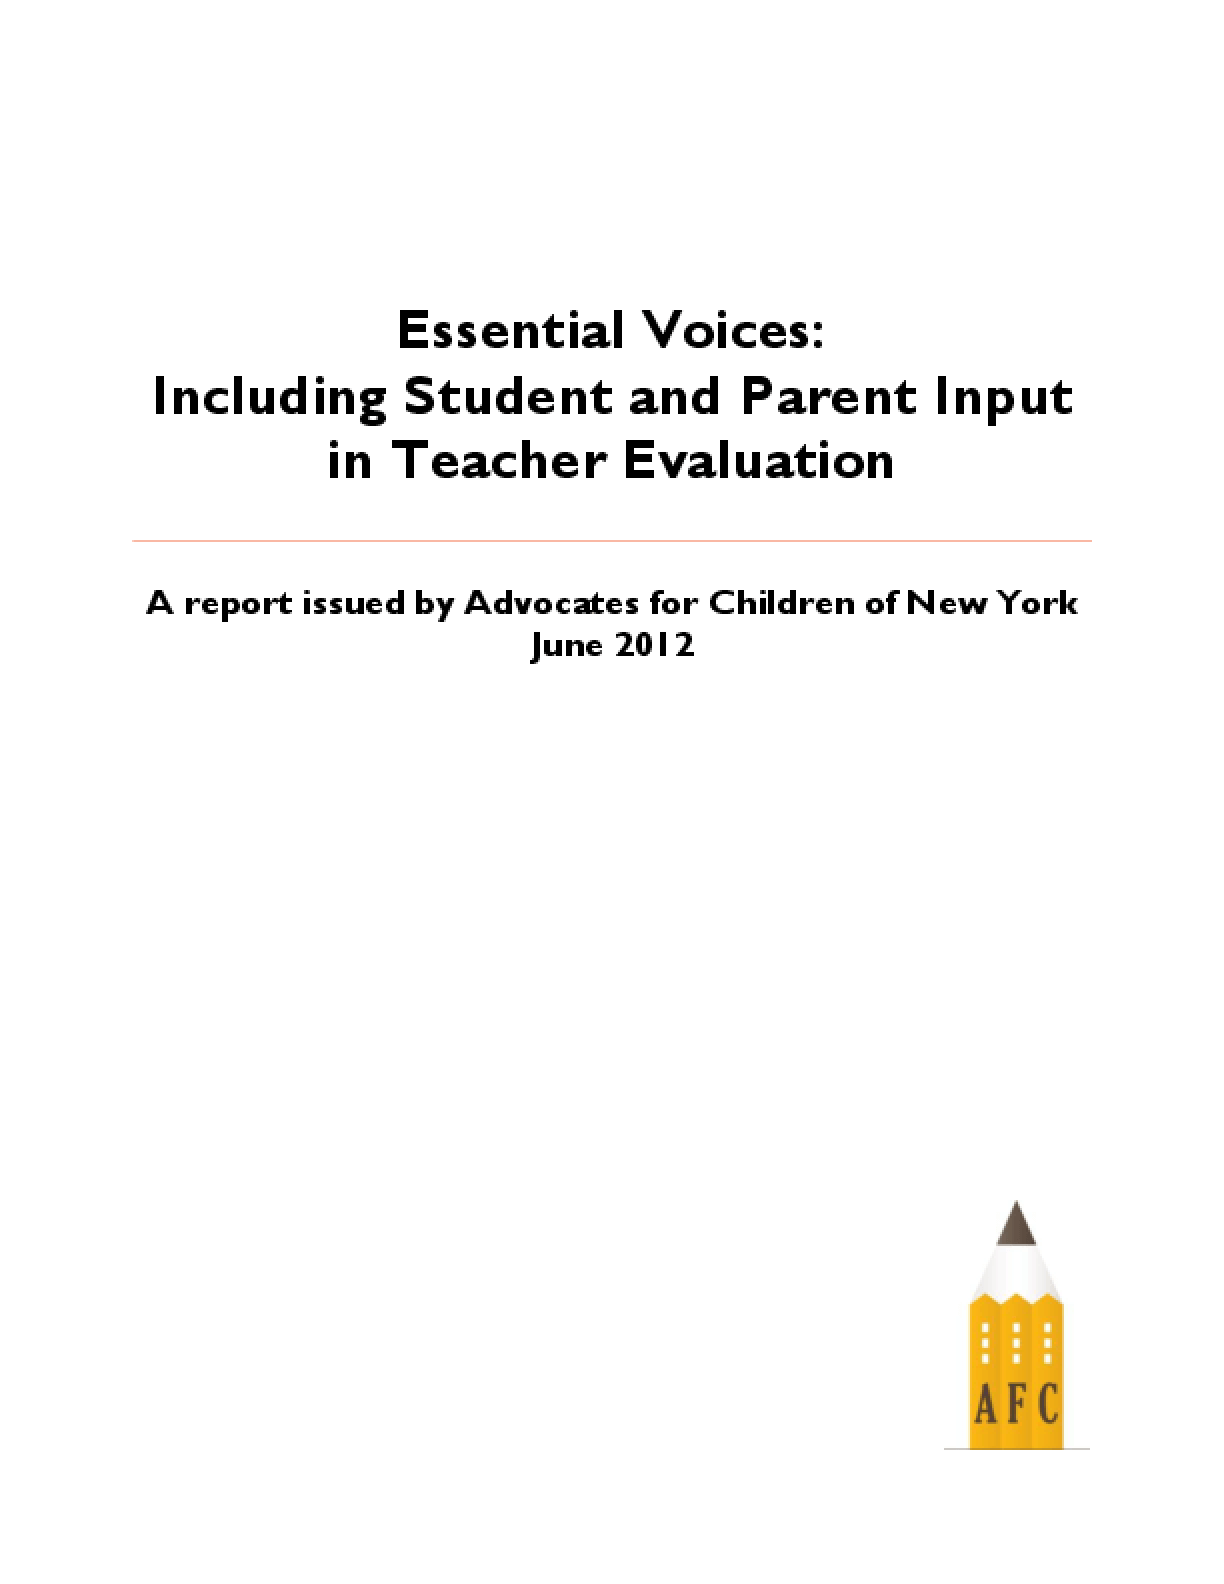 Essential Voices: Including Student and Parent Input in Teacher Evaluation